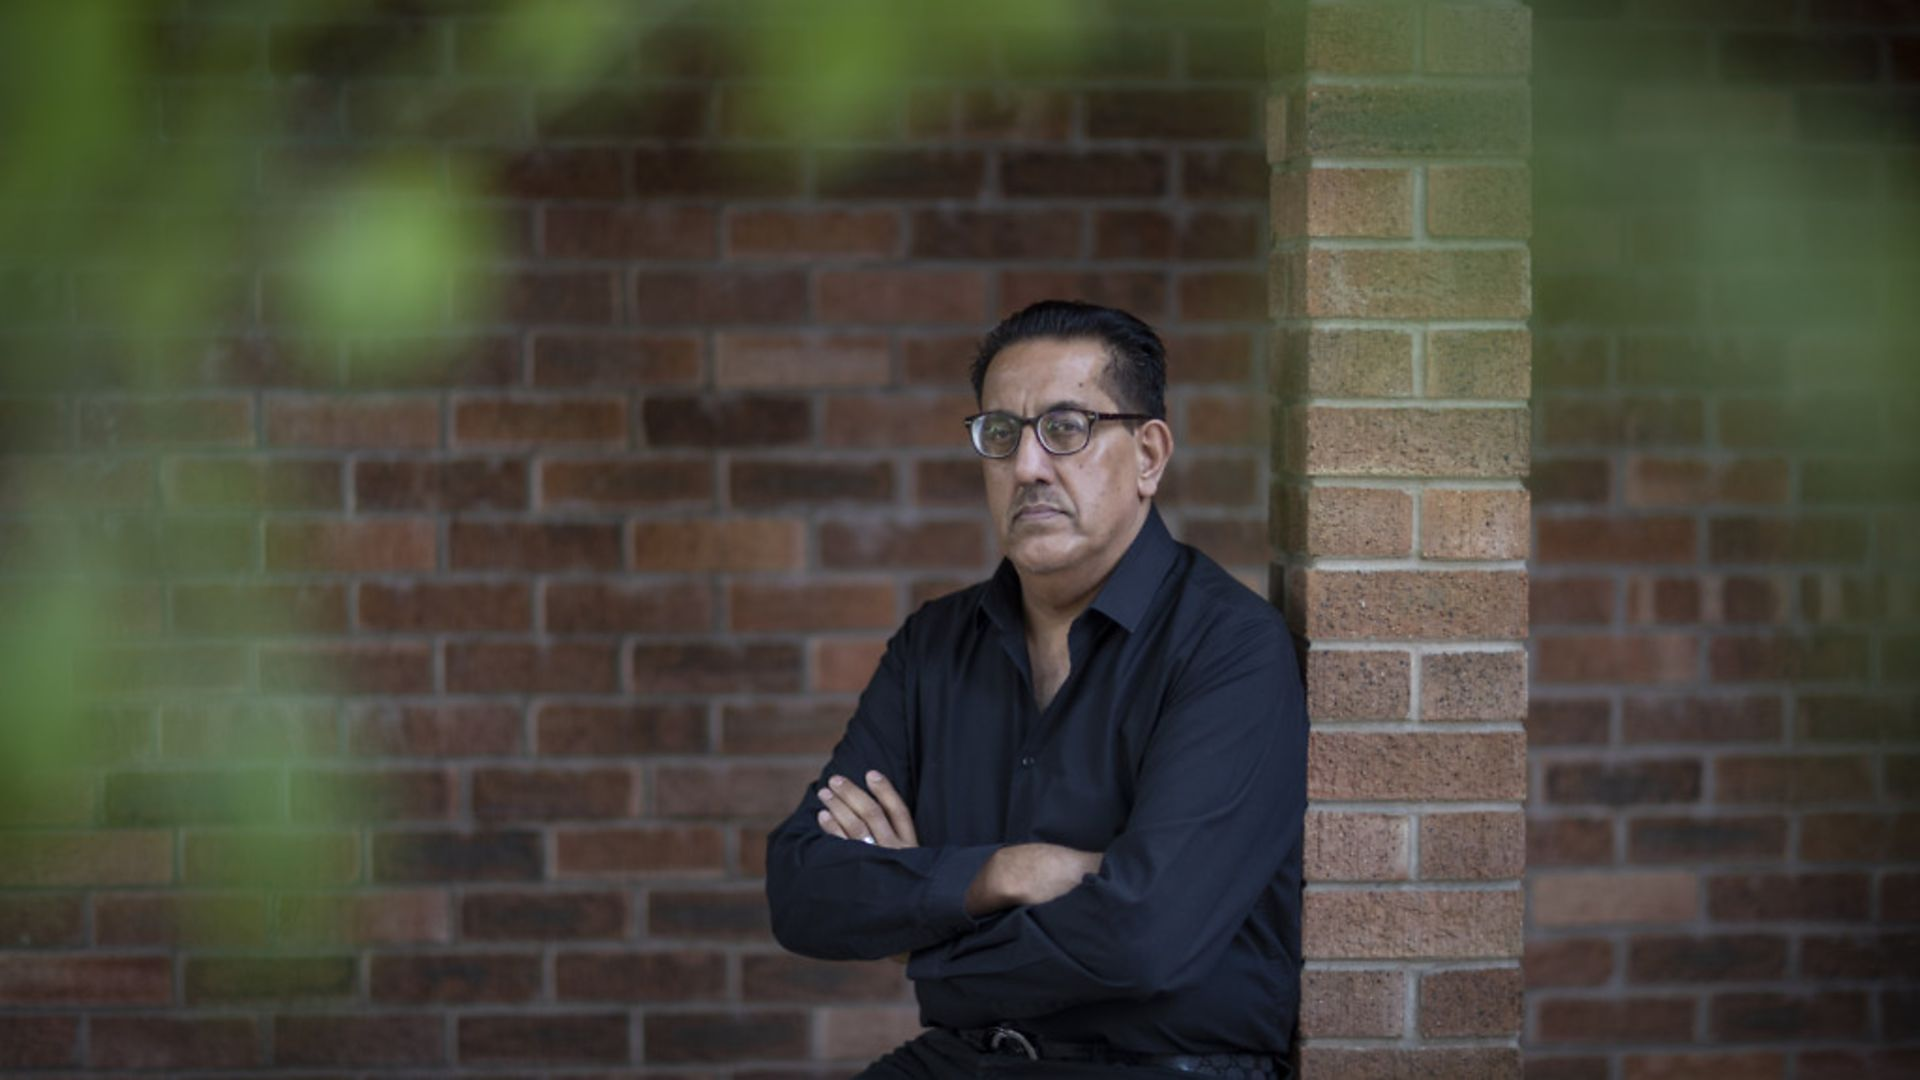 Nazir Afzal is a notable former prosecutor whose brother died during the pandemic - Credit: Steve Morgan